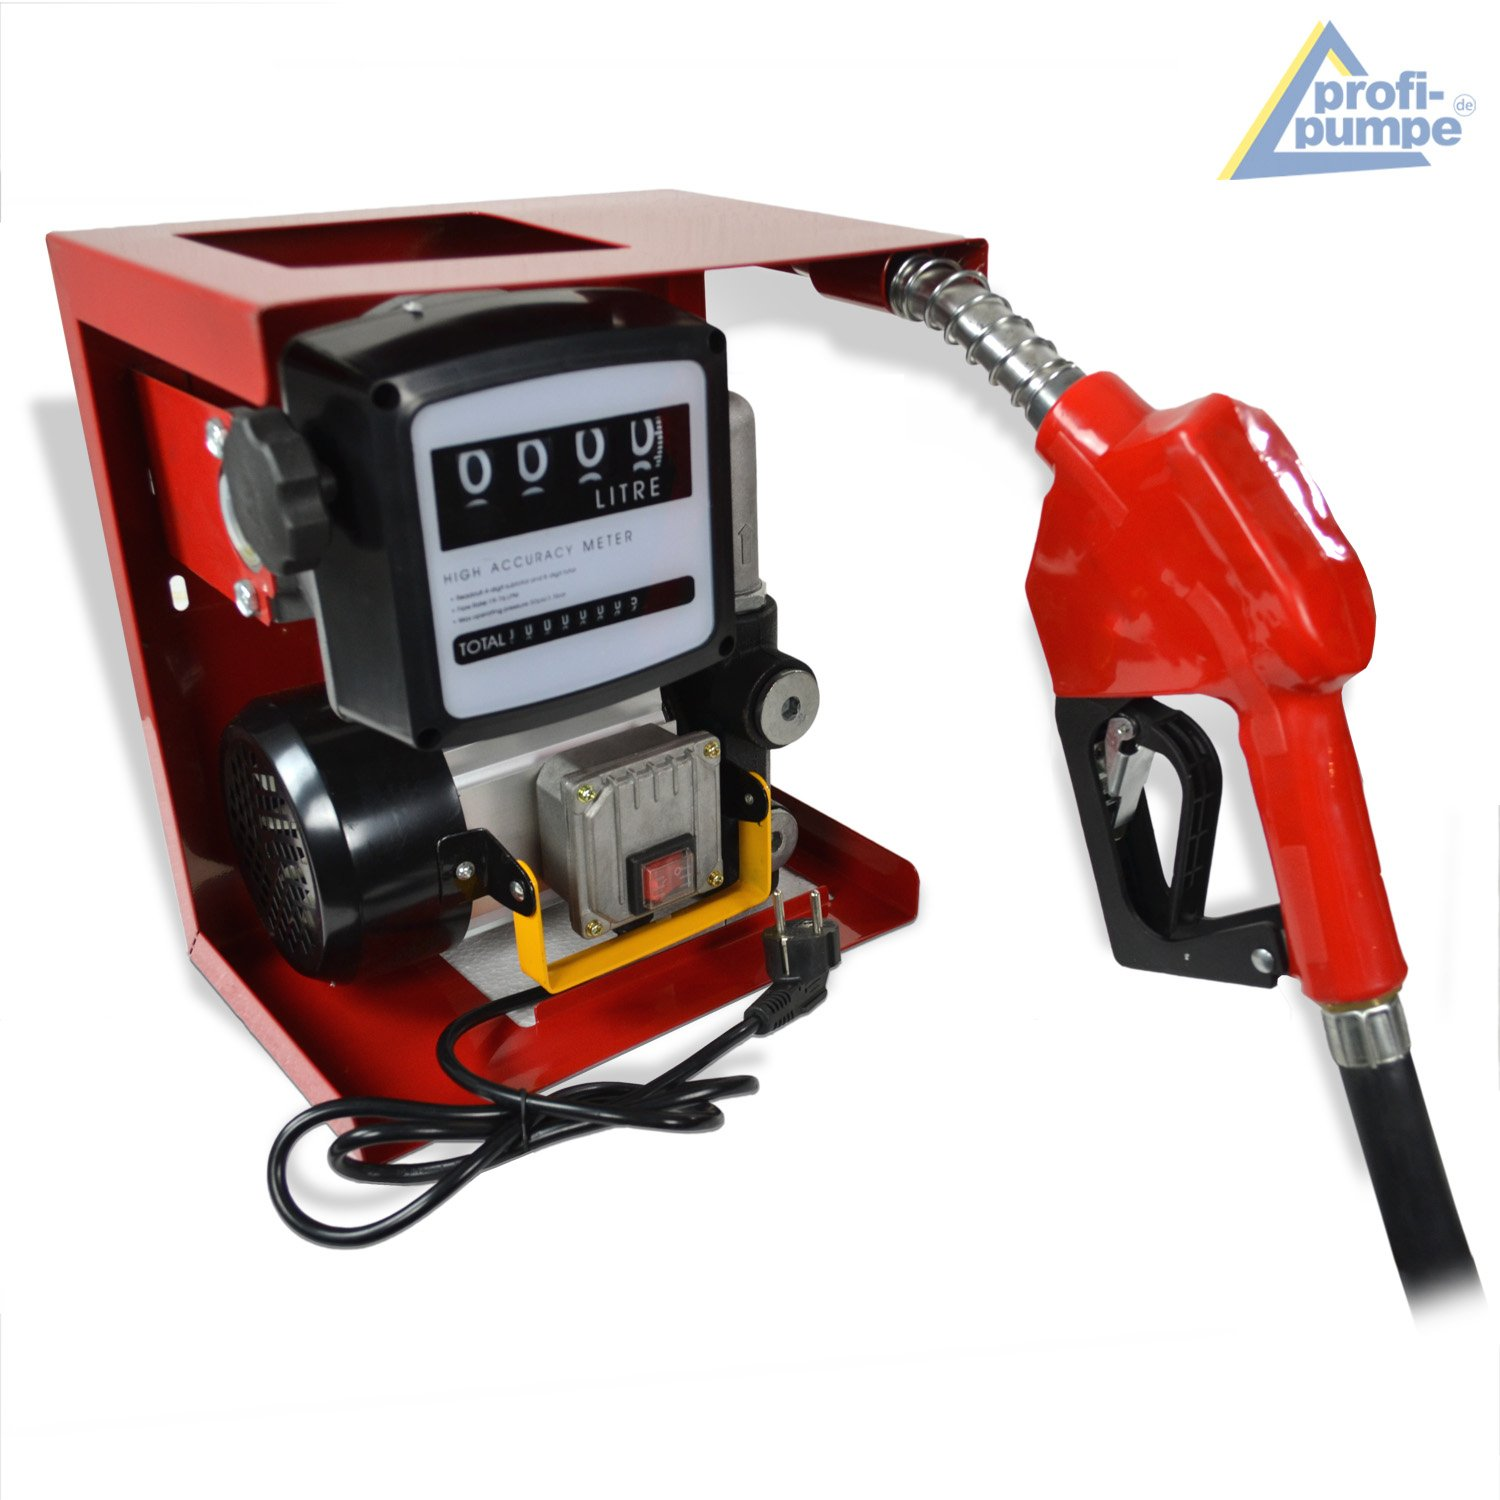 good EXTR 2pcs Brass fittings and BRASS CHECK-VALVE 2pcs connectors counter DIESEL TRANSFER PUMP EXCELLENCE-2 DIESEL PUMP for Diesel // Biodiesel // fuel // oil 220V 230V 240V electrical barrel pump Kit with high quality automatic nozzle flexible hose